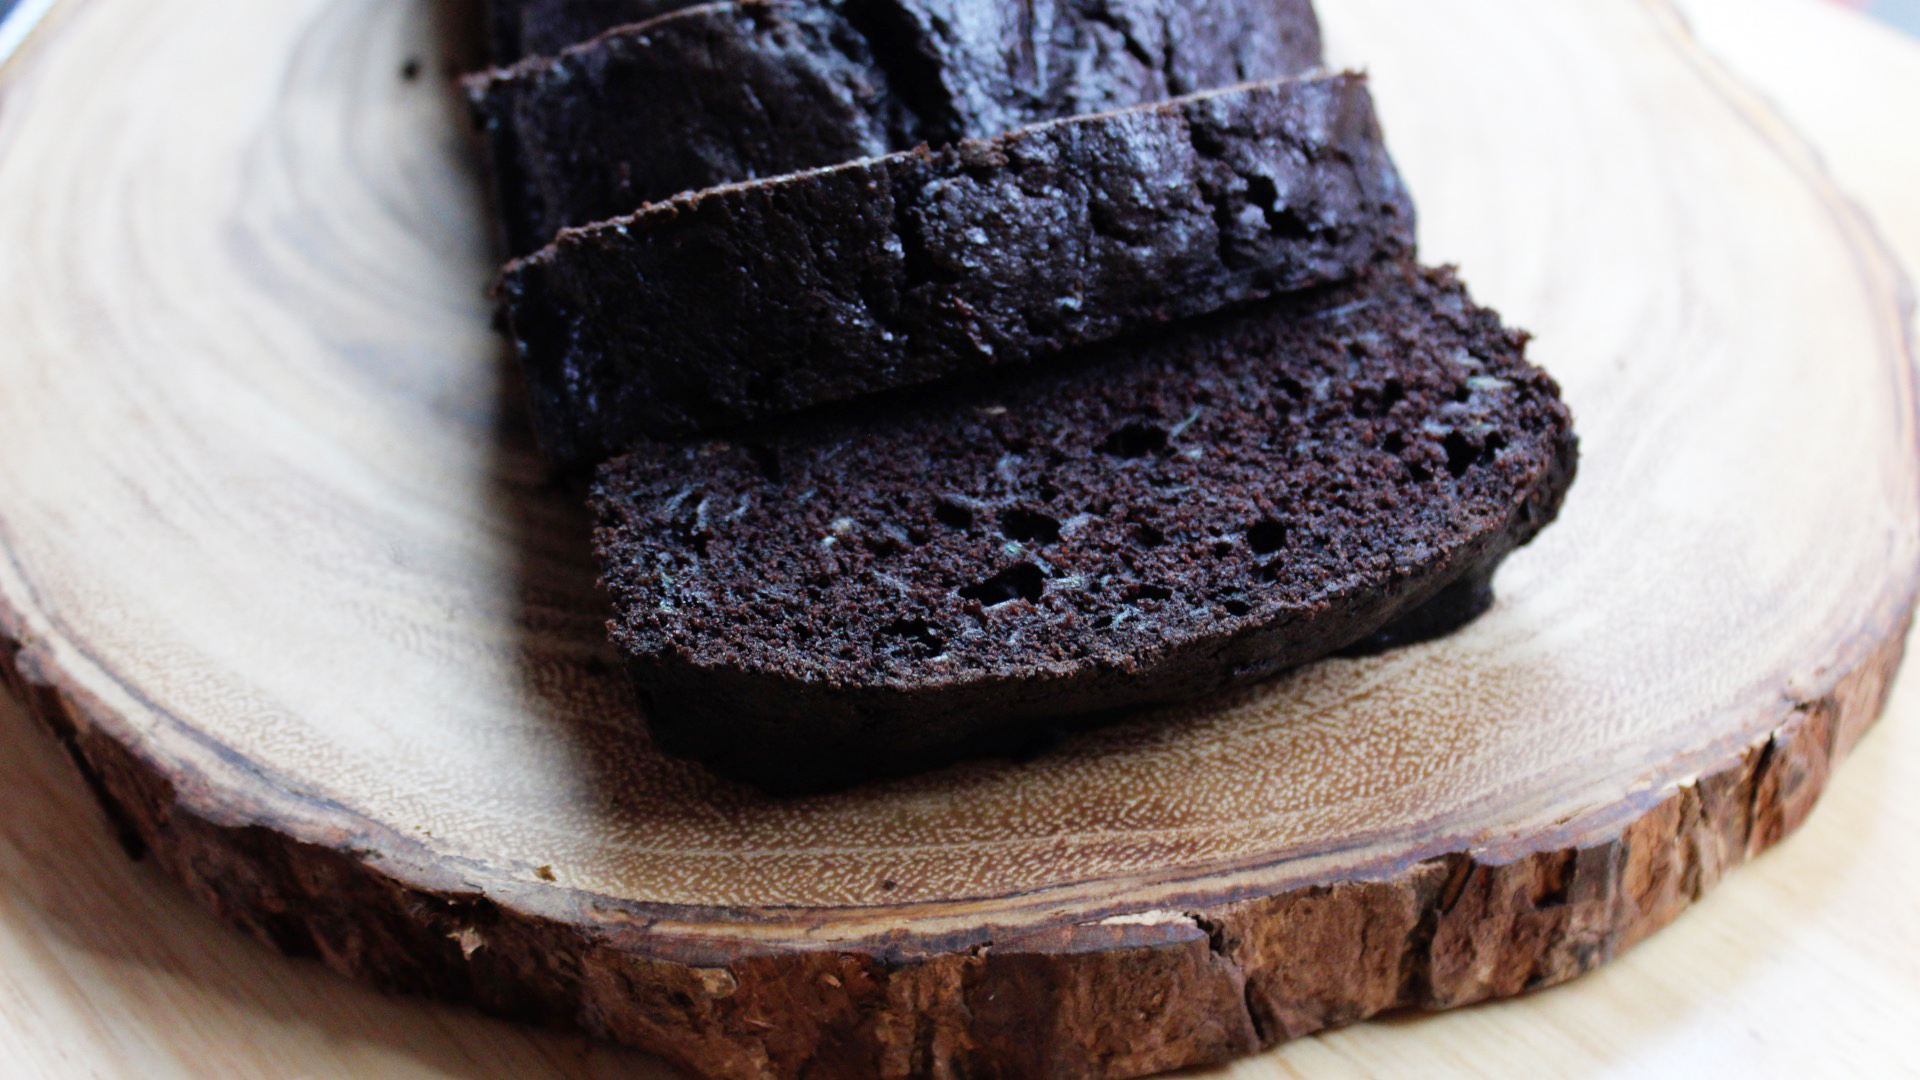 Bolo de Chocolate com Abobrinha (Chocolate Zucchini Bread)